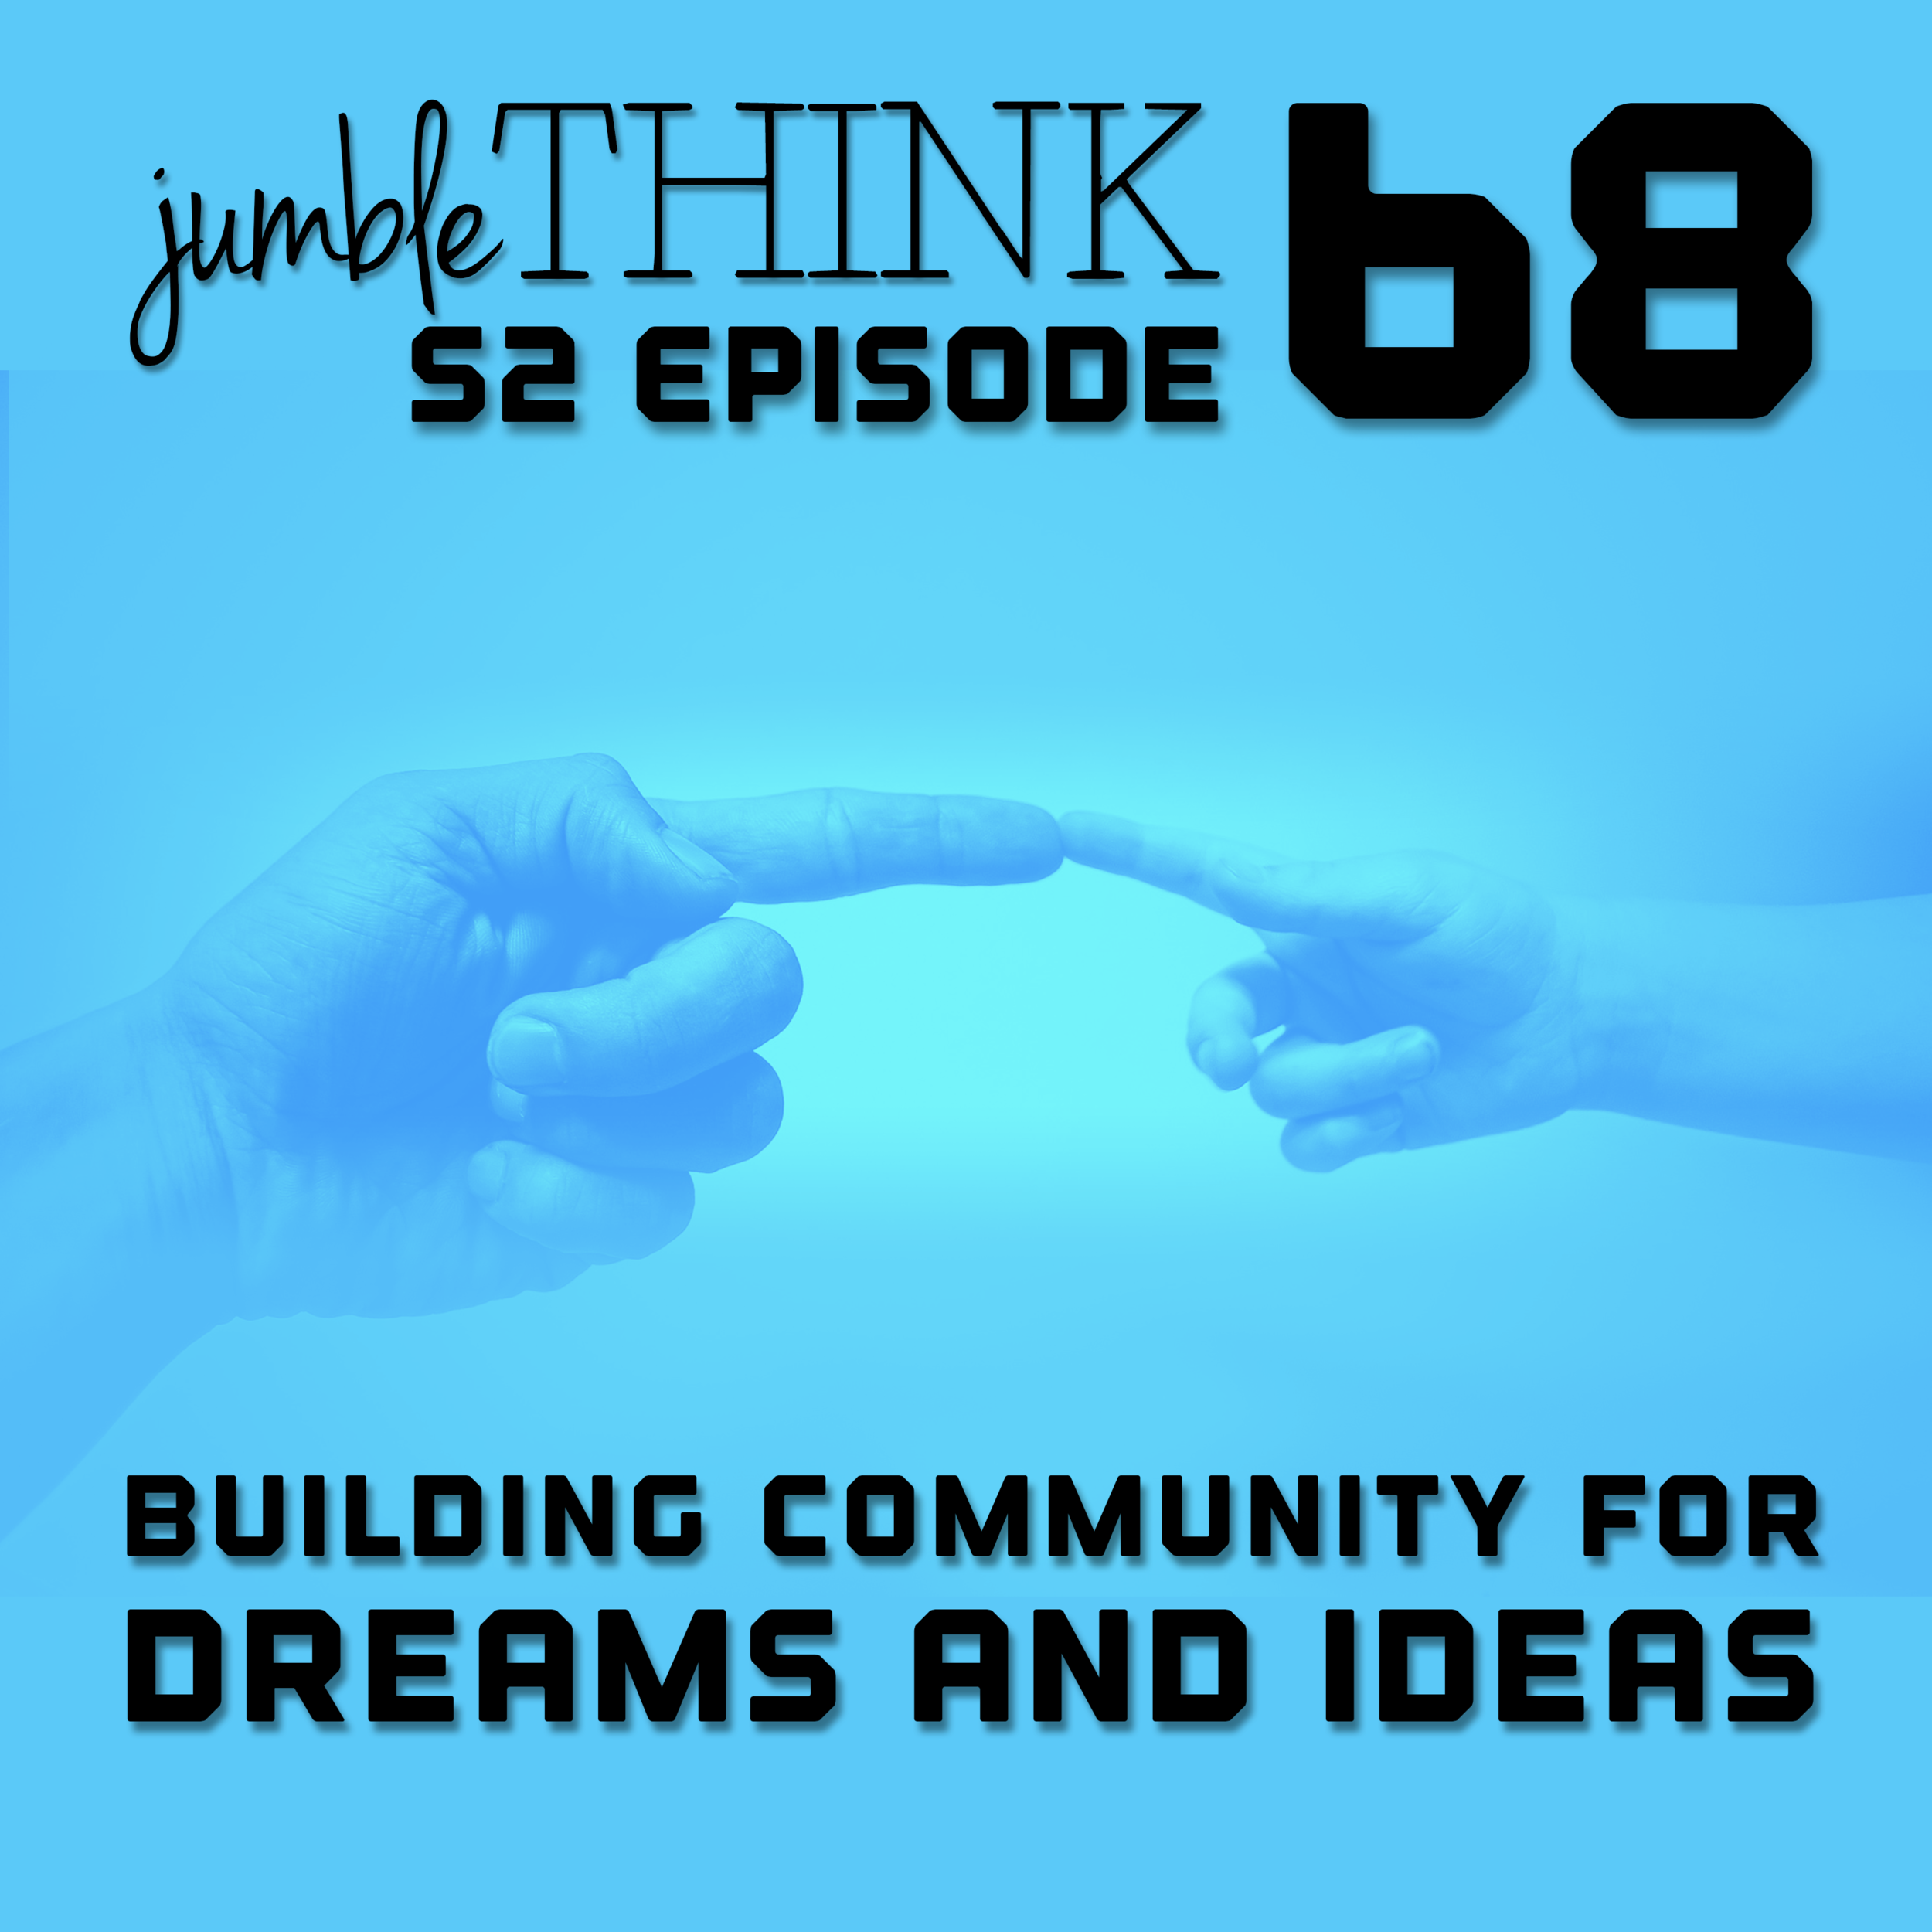 S2E68-community-dreams-and-ideas.png